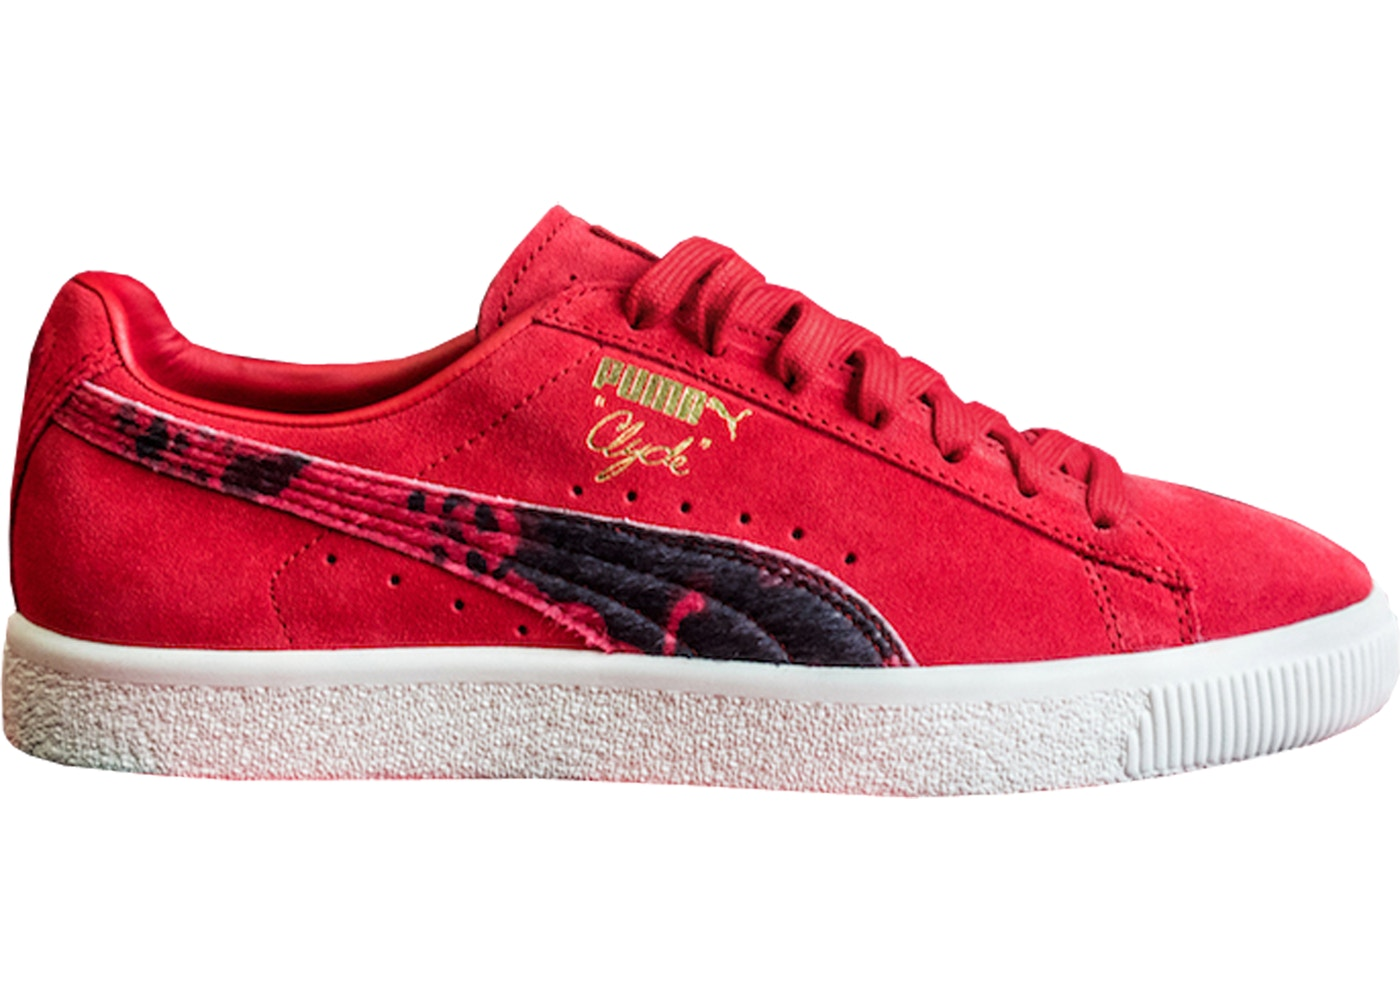 new arrival 68489 a4803 Puma Clyde Packer Shoes Cow Suit Red